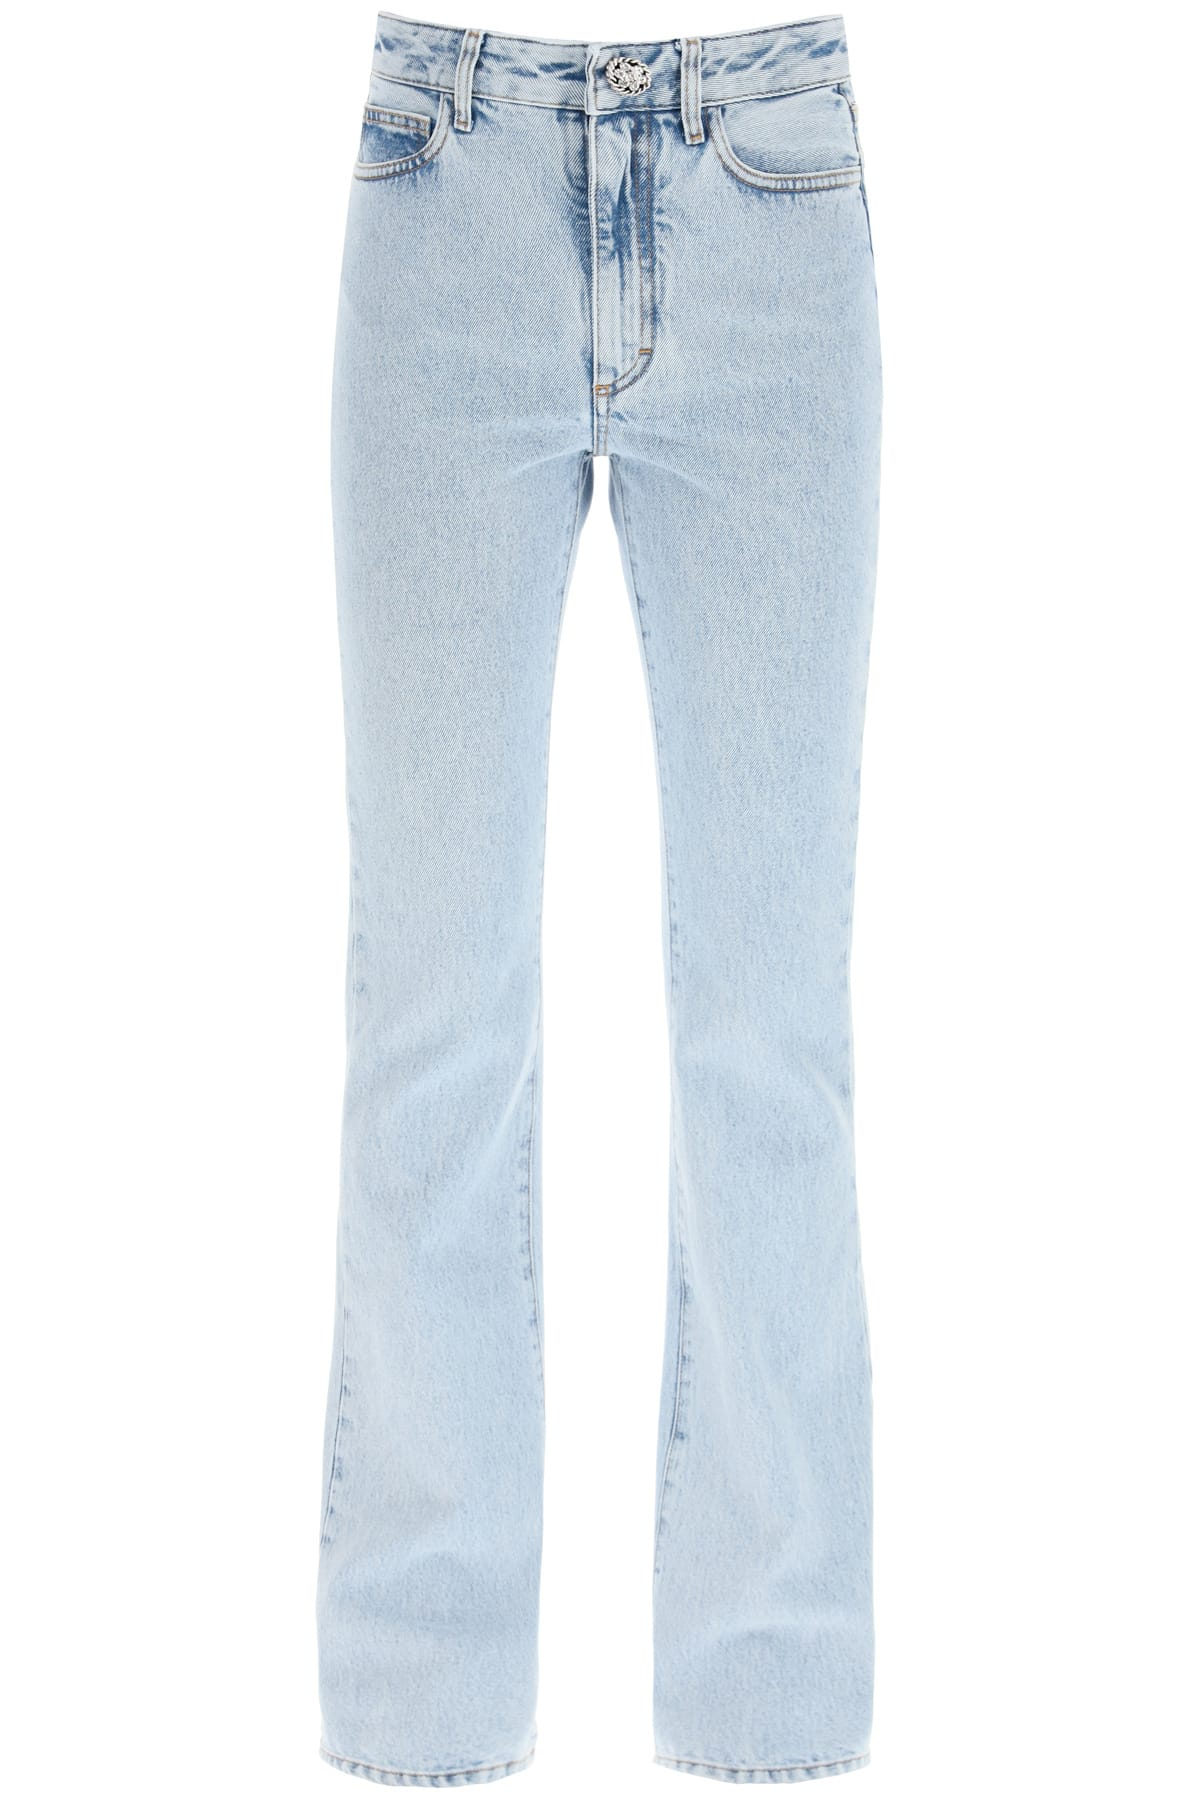 Alessandra Rich HIGH WAIST FLARE JEANS